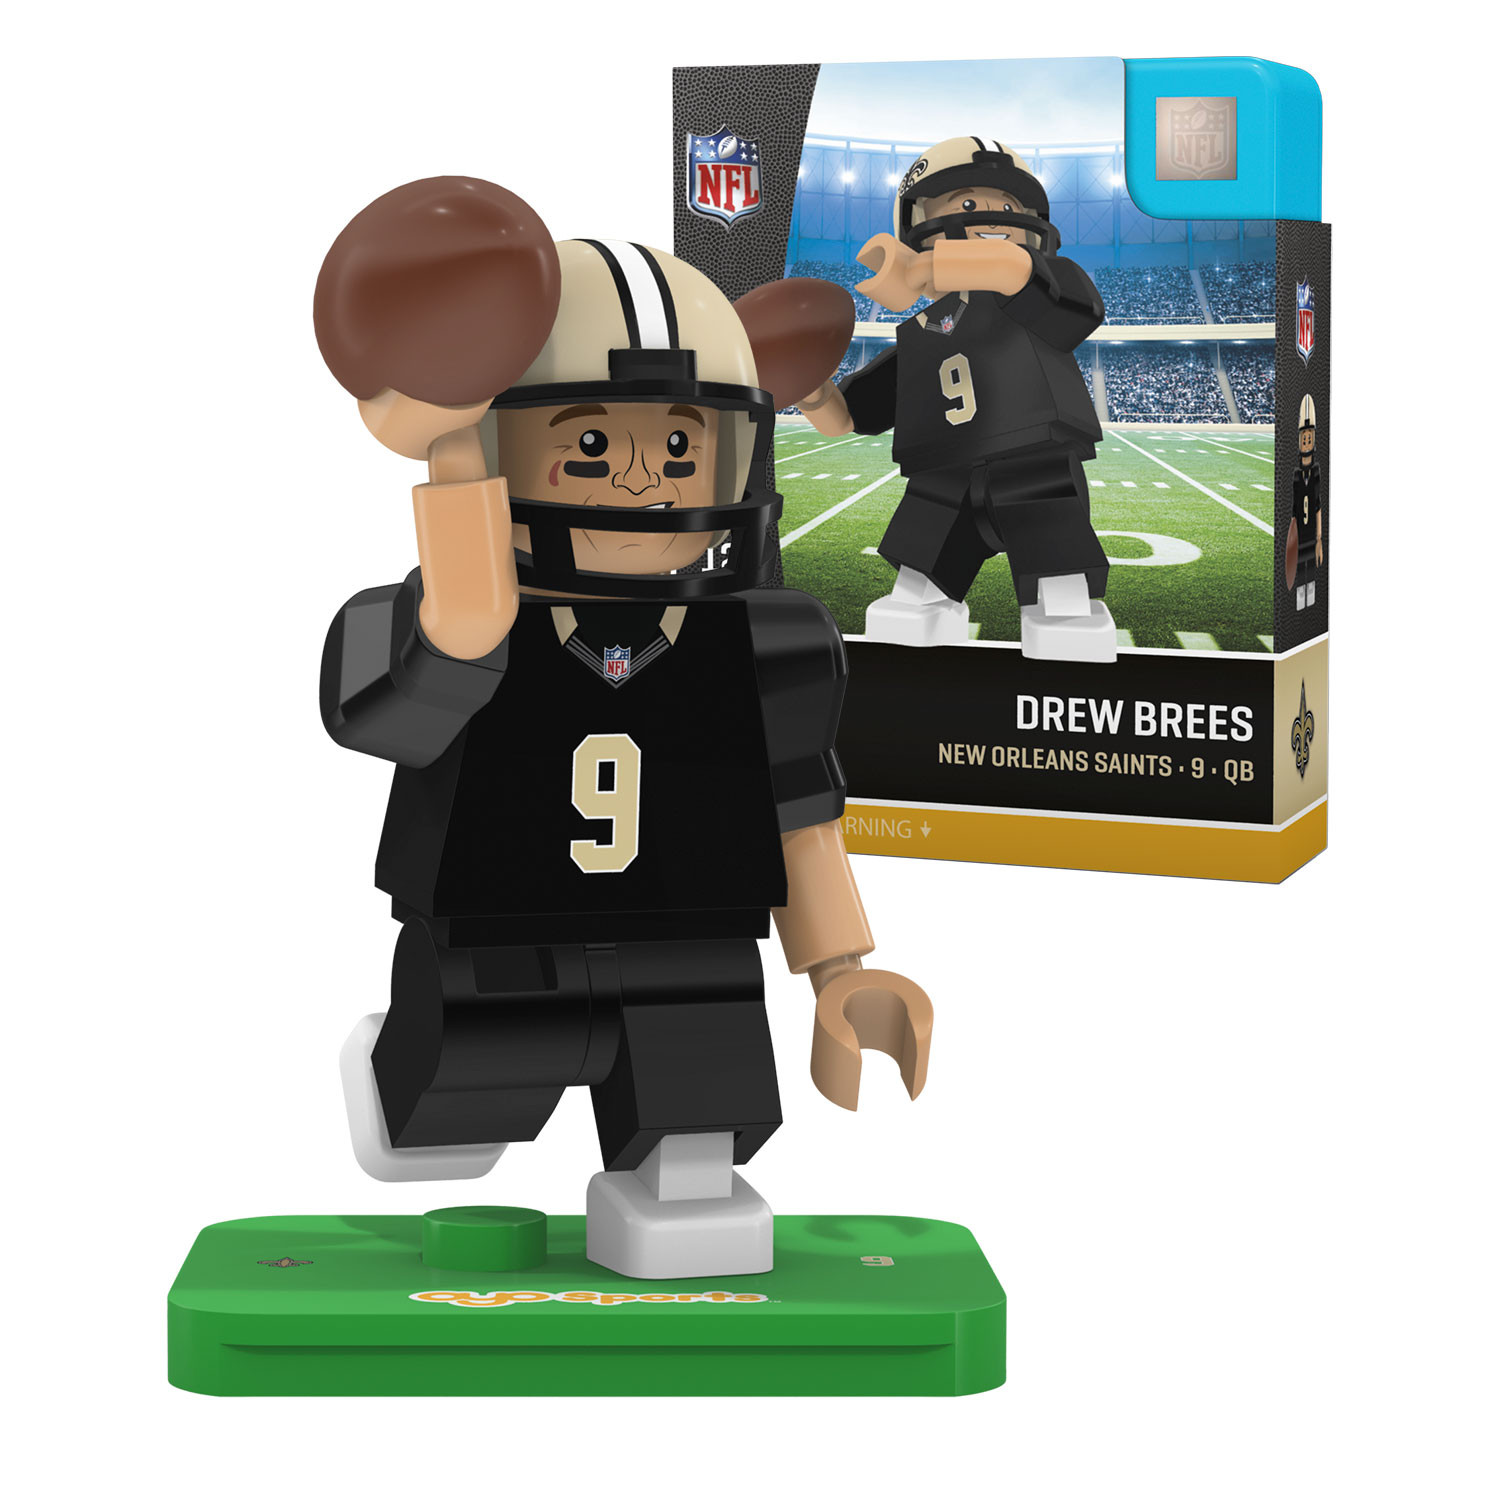 Drew Brees New Orleans Saints Official NFL Limited Edition Minifigure by Oyo 062198